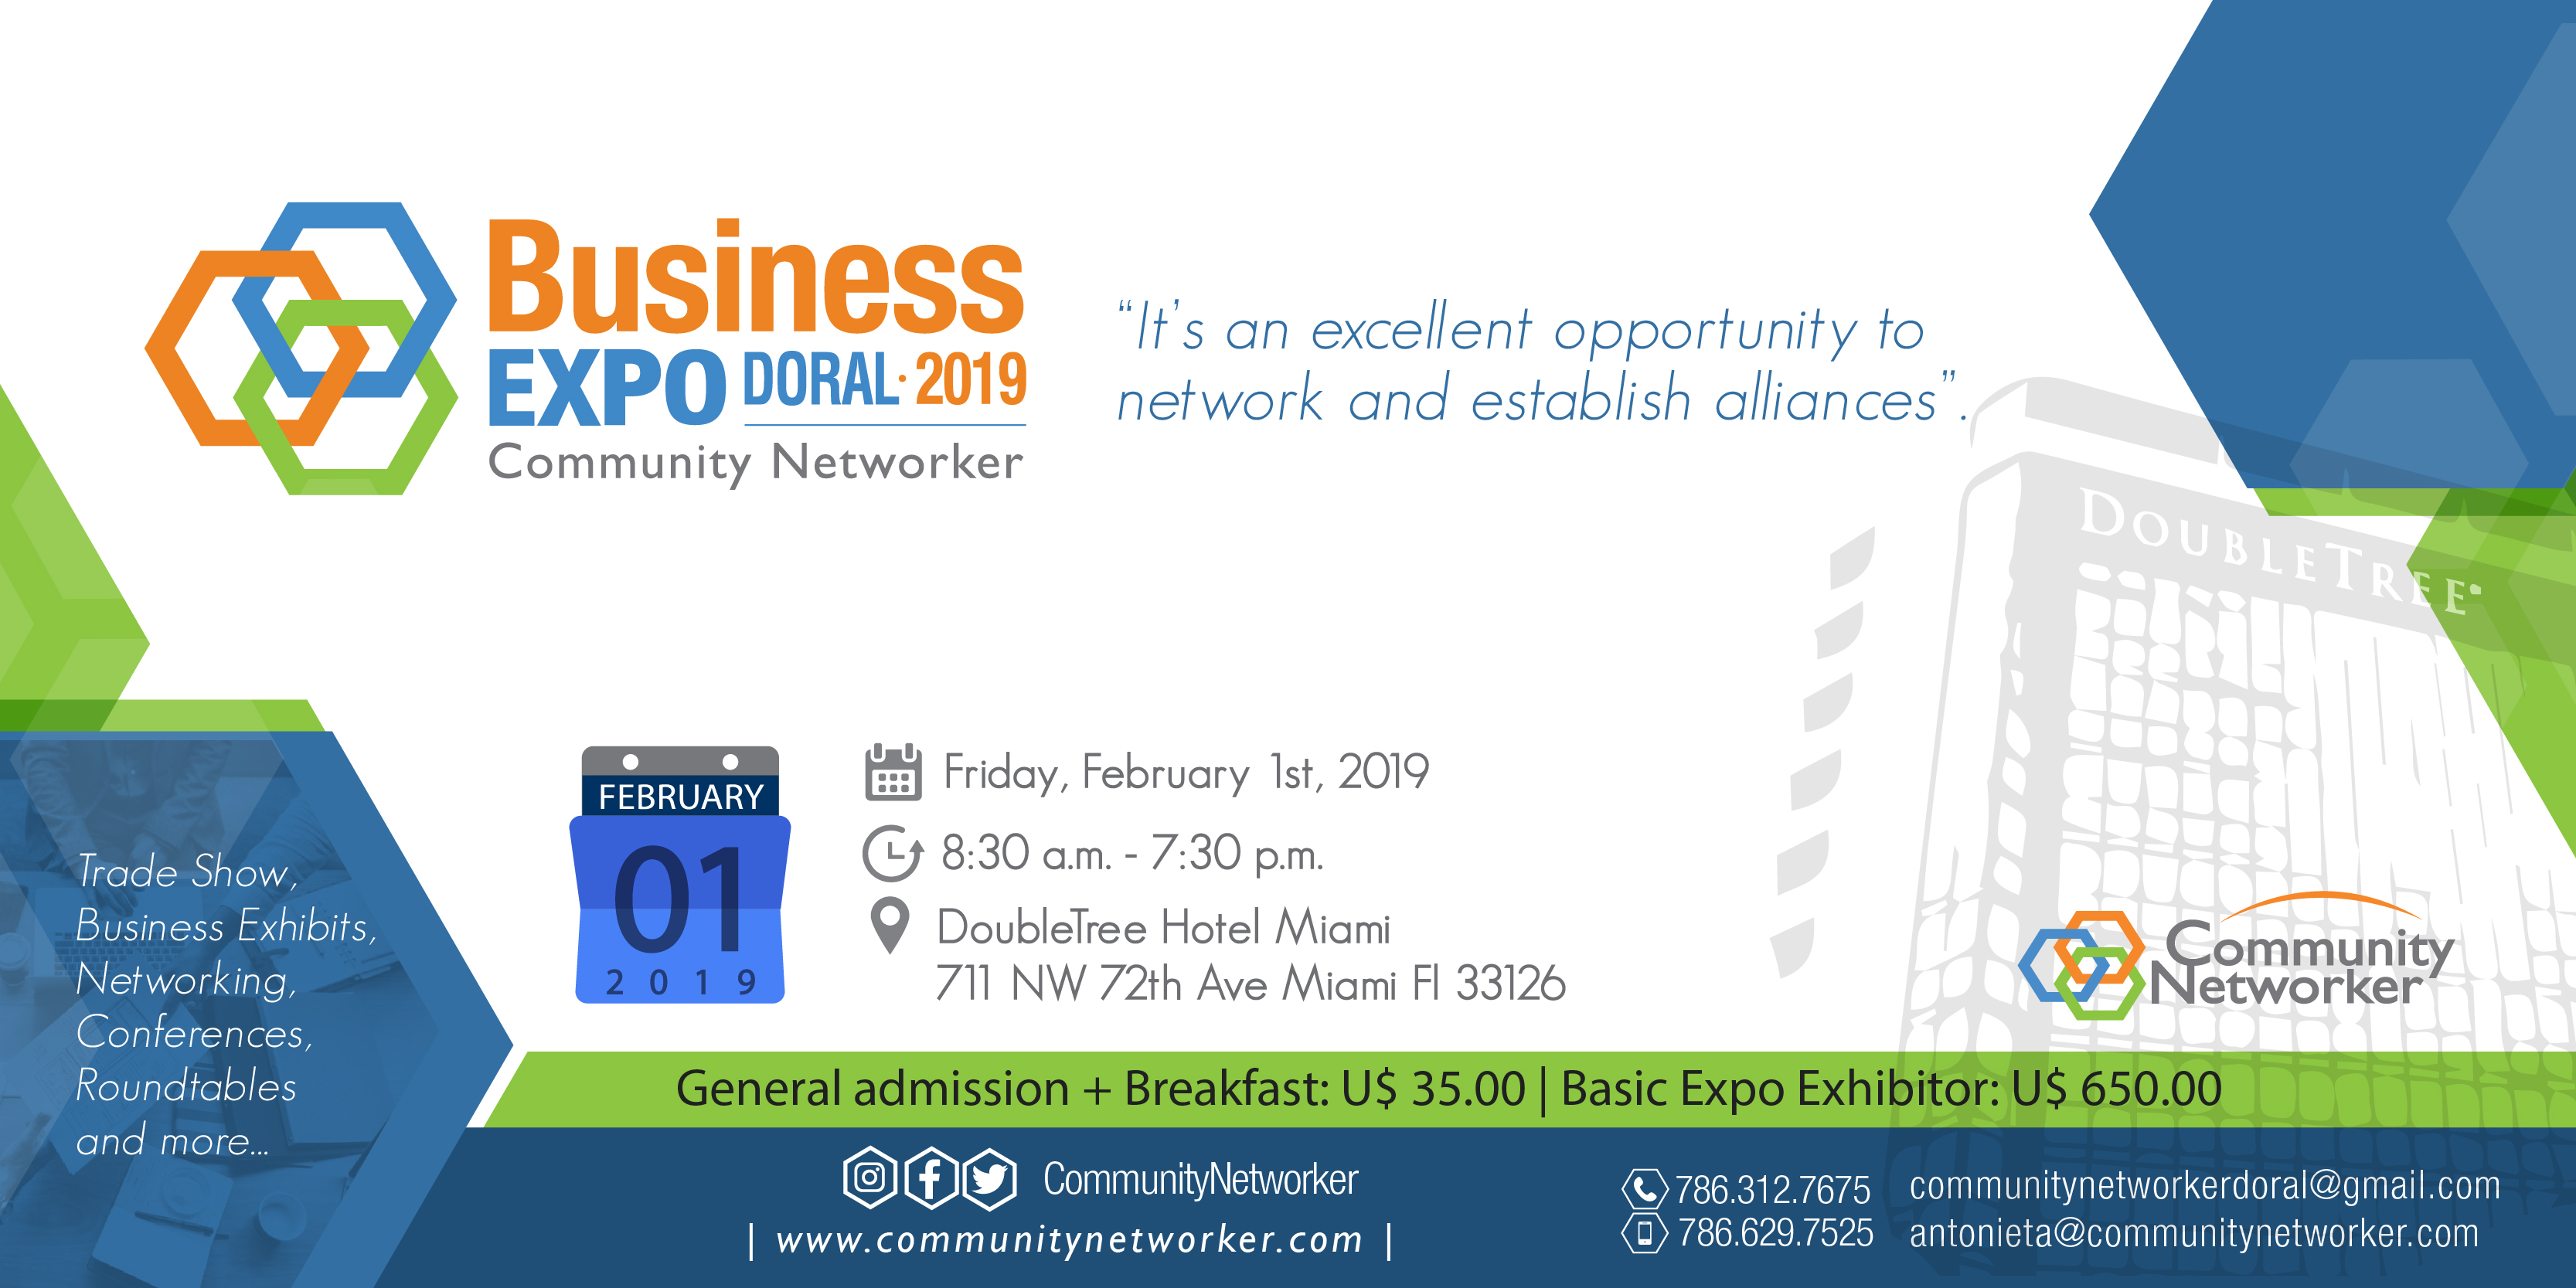 Business Expo Doral 2019